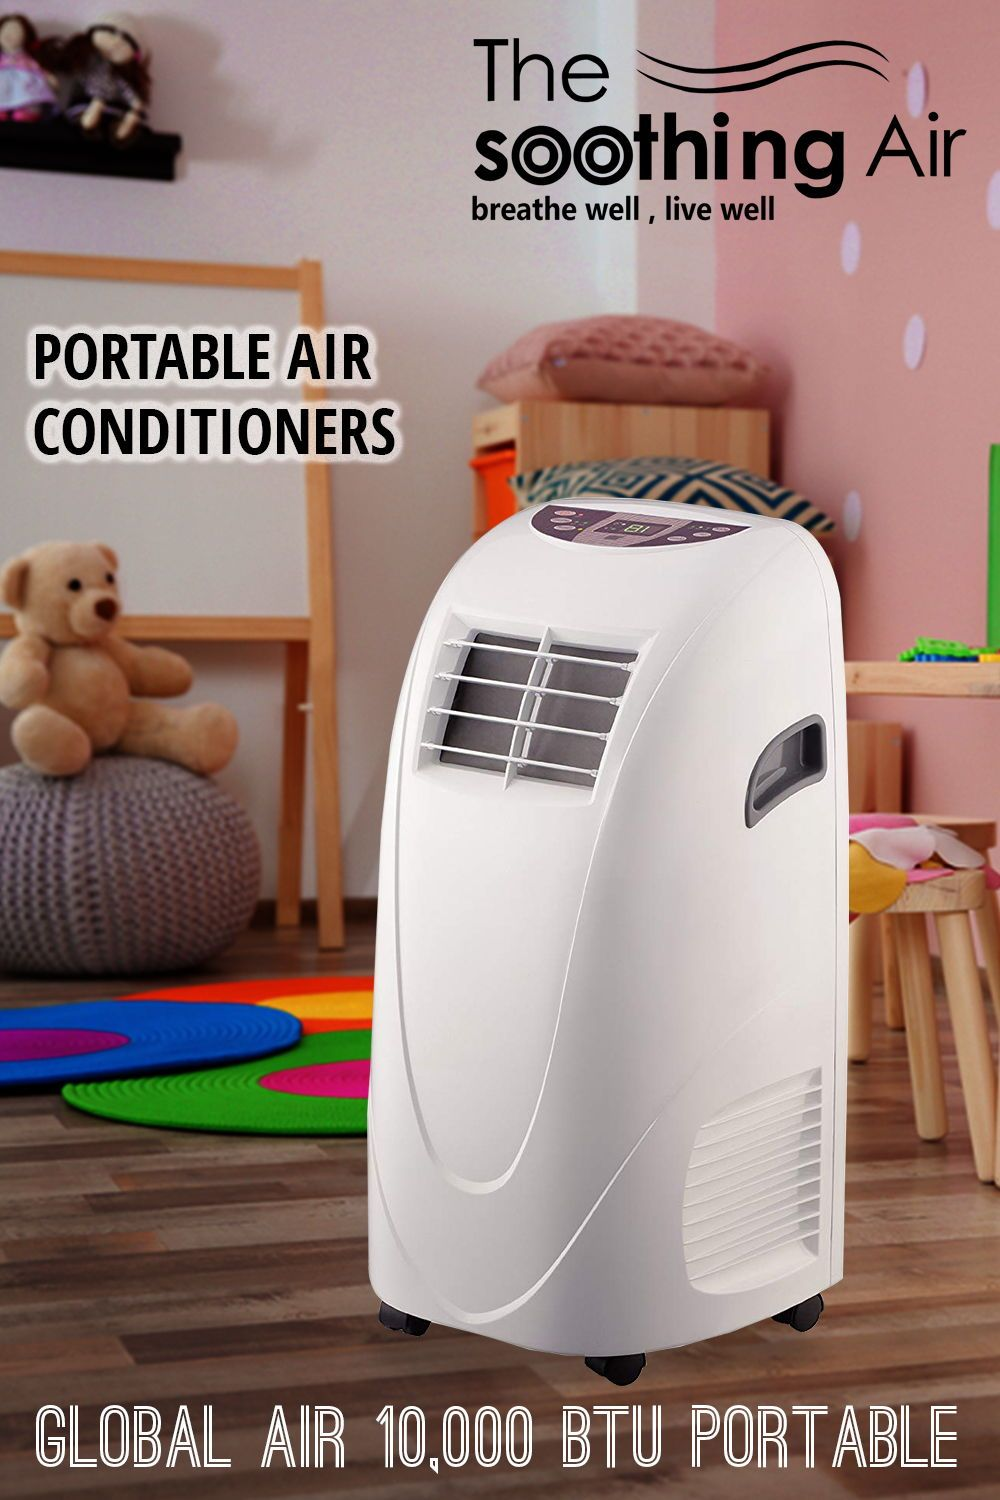 Top 10 Portable Air Conditioners Feb 2020 Reviews Buyers